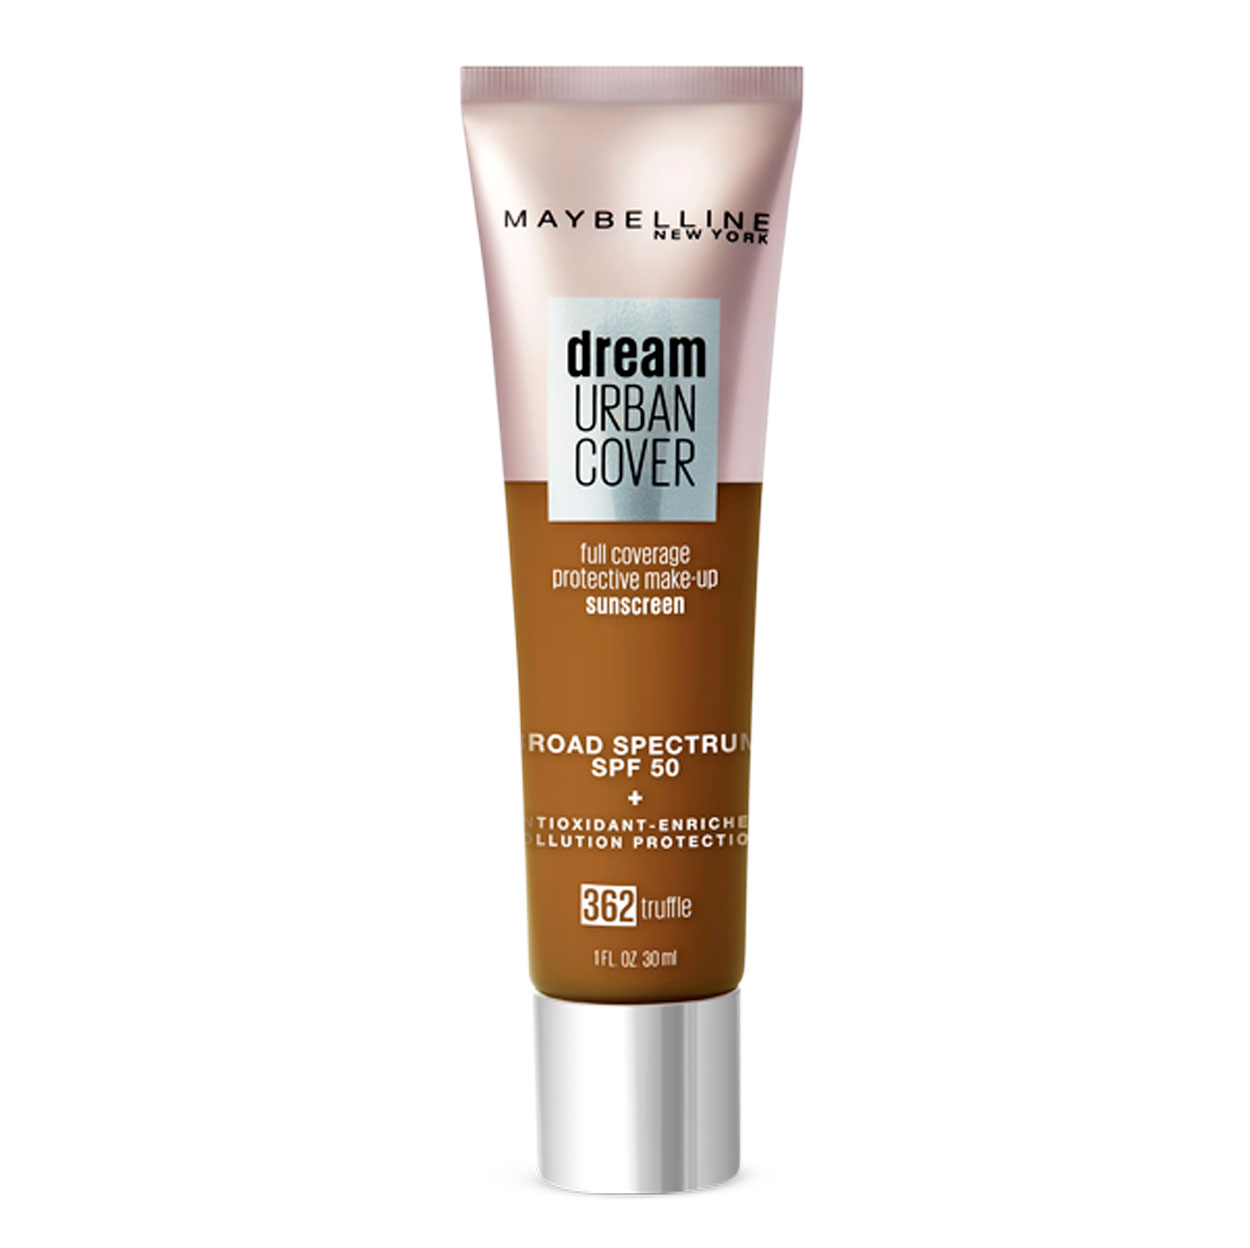 Lightweight and full-coverage foundation with SPF 50